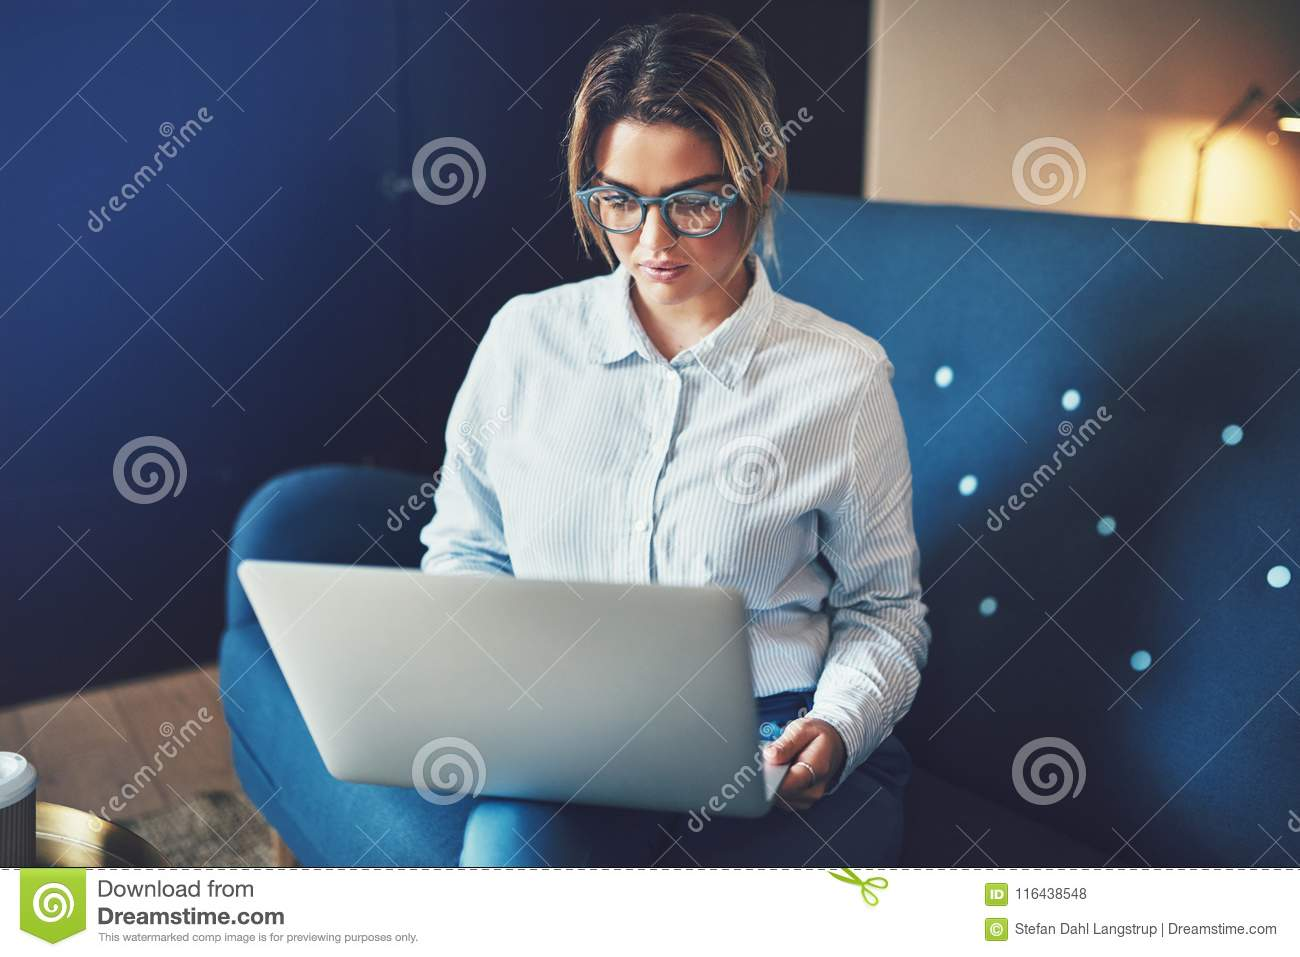 Focused young businesswoman sitting on a sofa working online